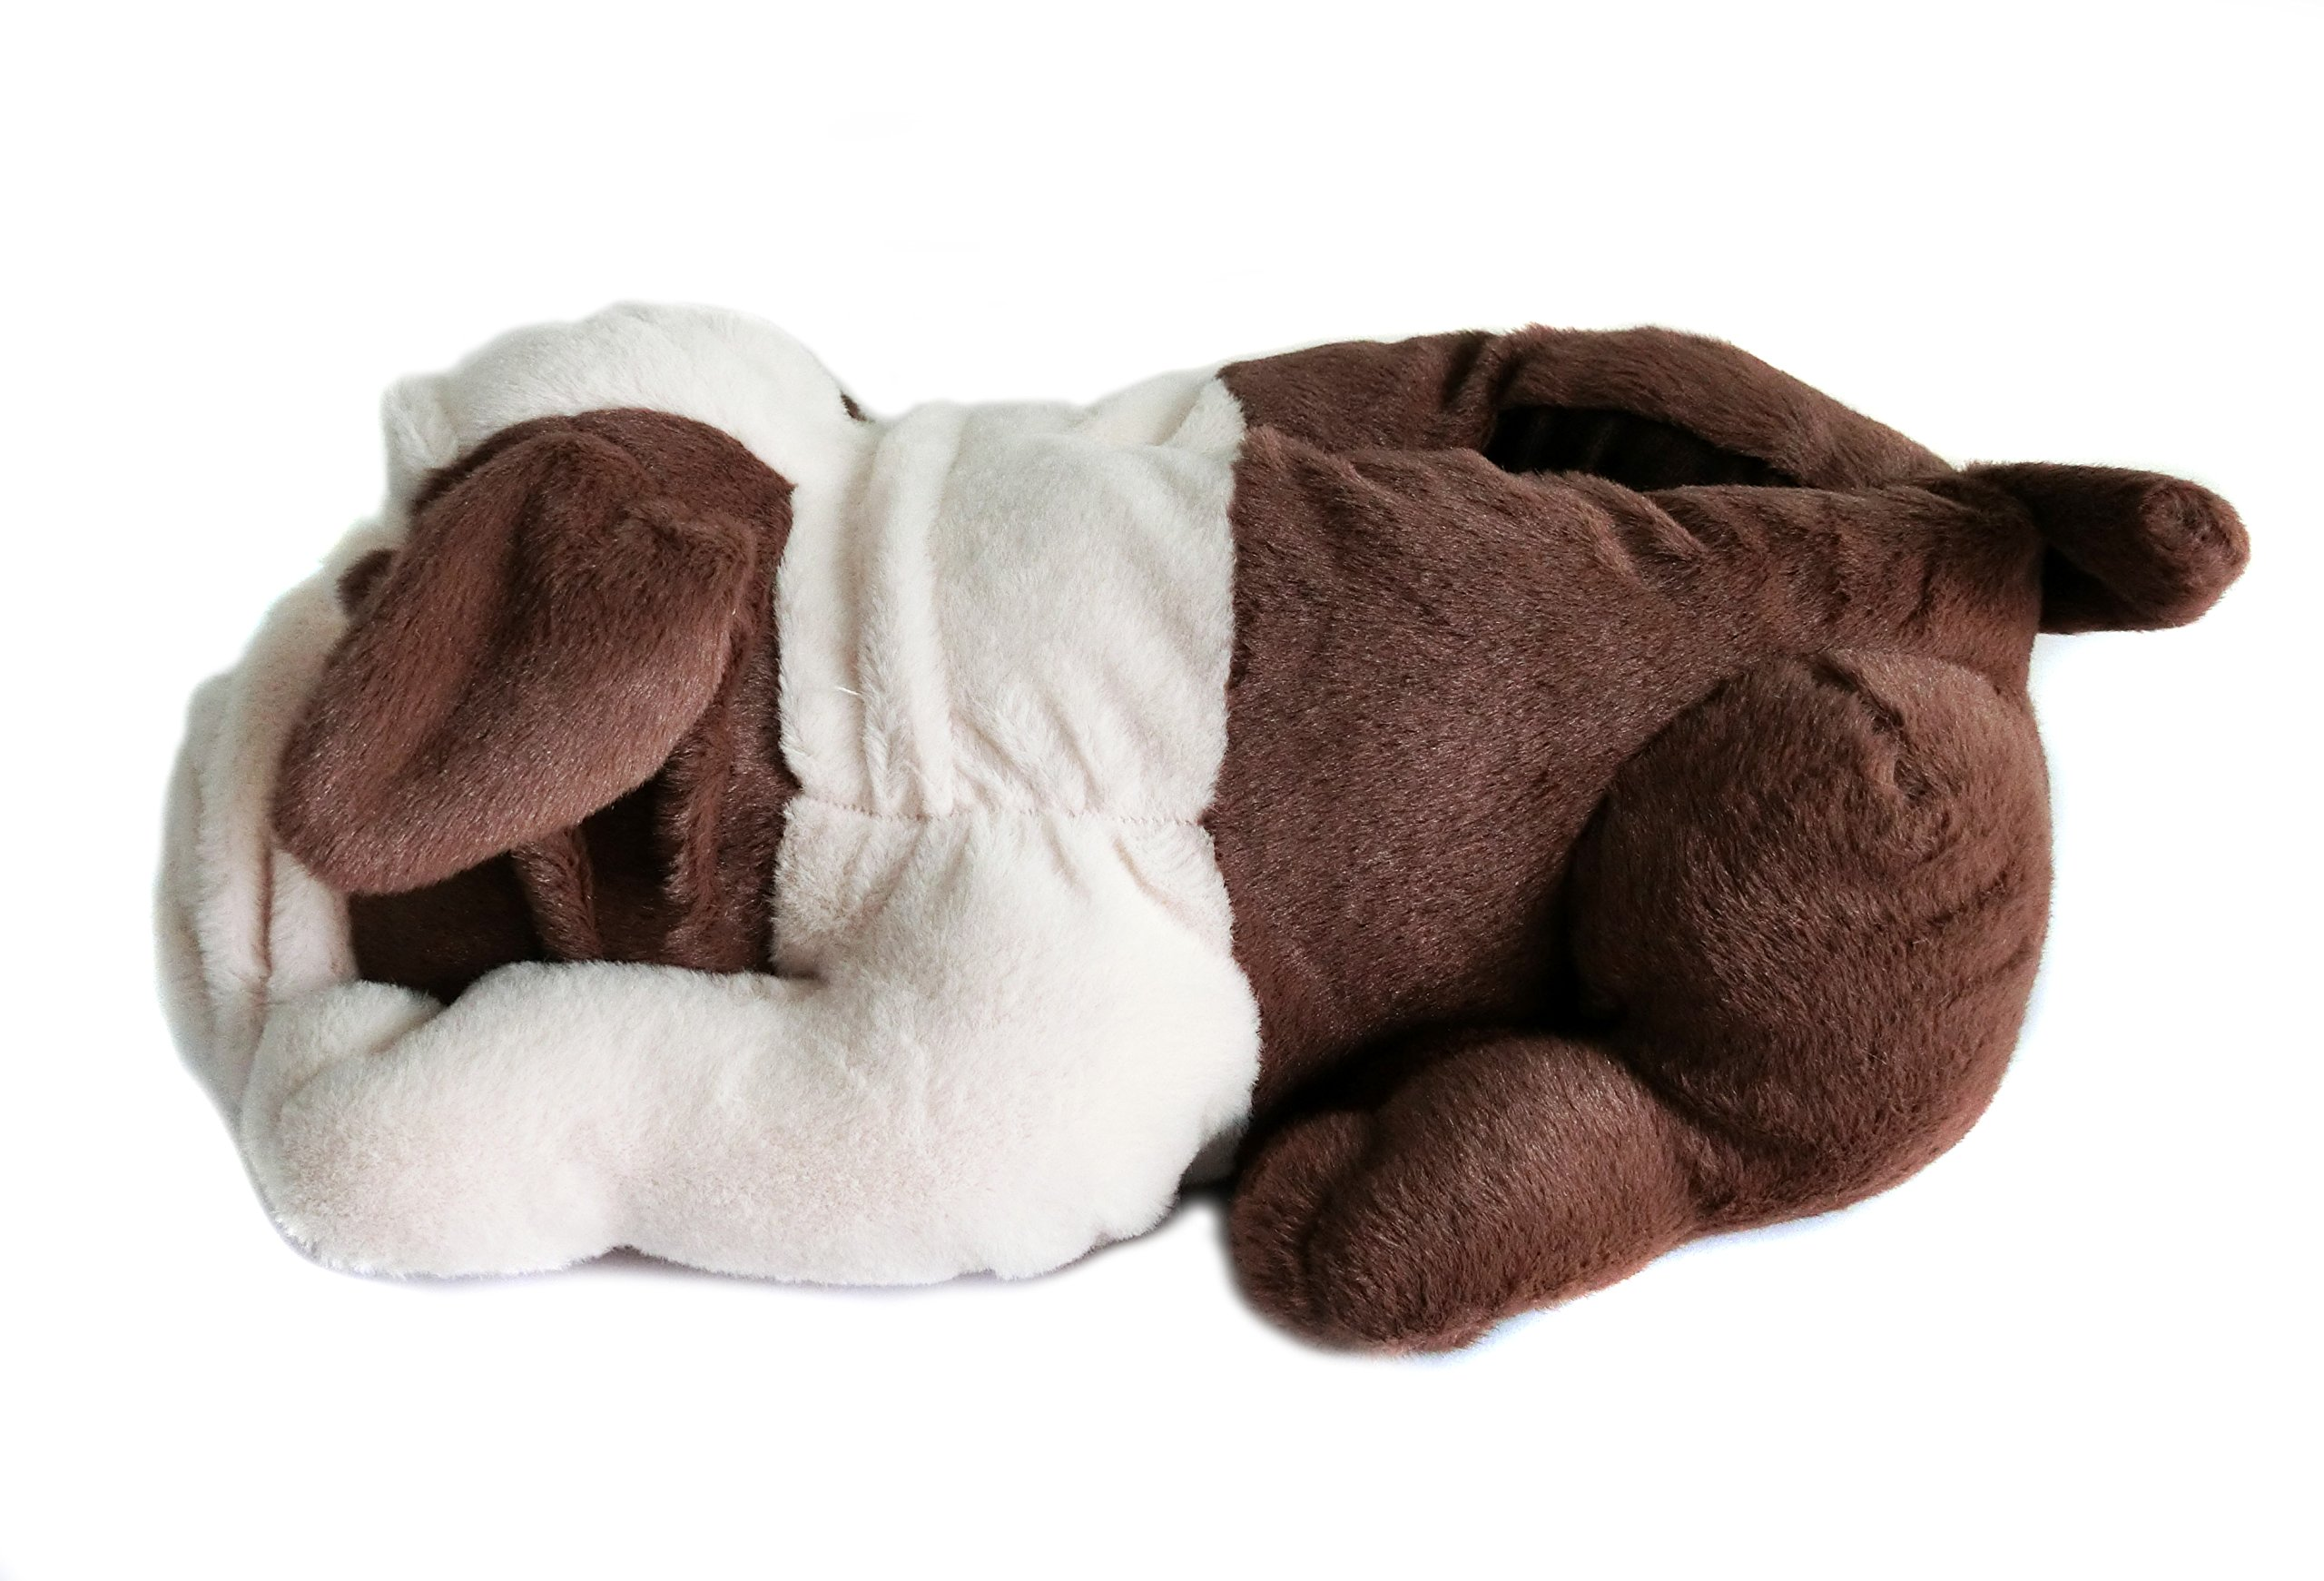 Fuzzy Winter Indoor Animal Bulldog Slippers for Adult and Kid, Bull Dogs (US Women Size 7-9, Coffee Bulldog) by Onmygogo (Image #5)